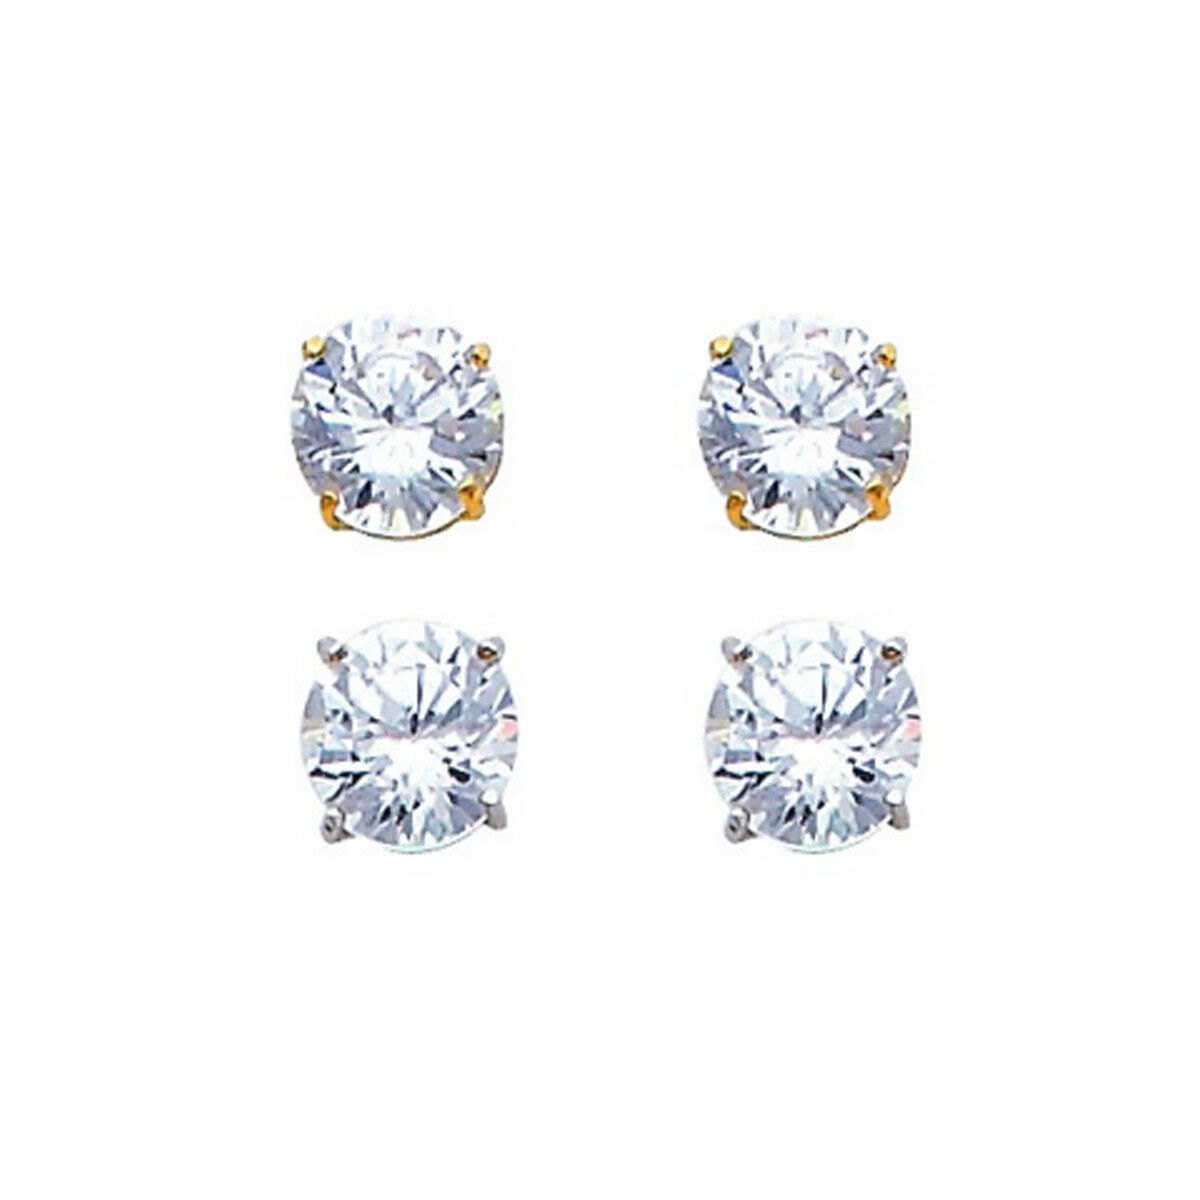 1 Carat Solitaire Stud Round Simulated Diamonds Solid 14k gold Unisex Earrings